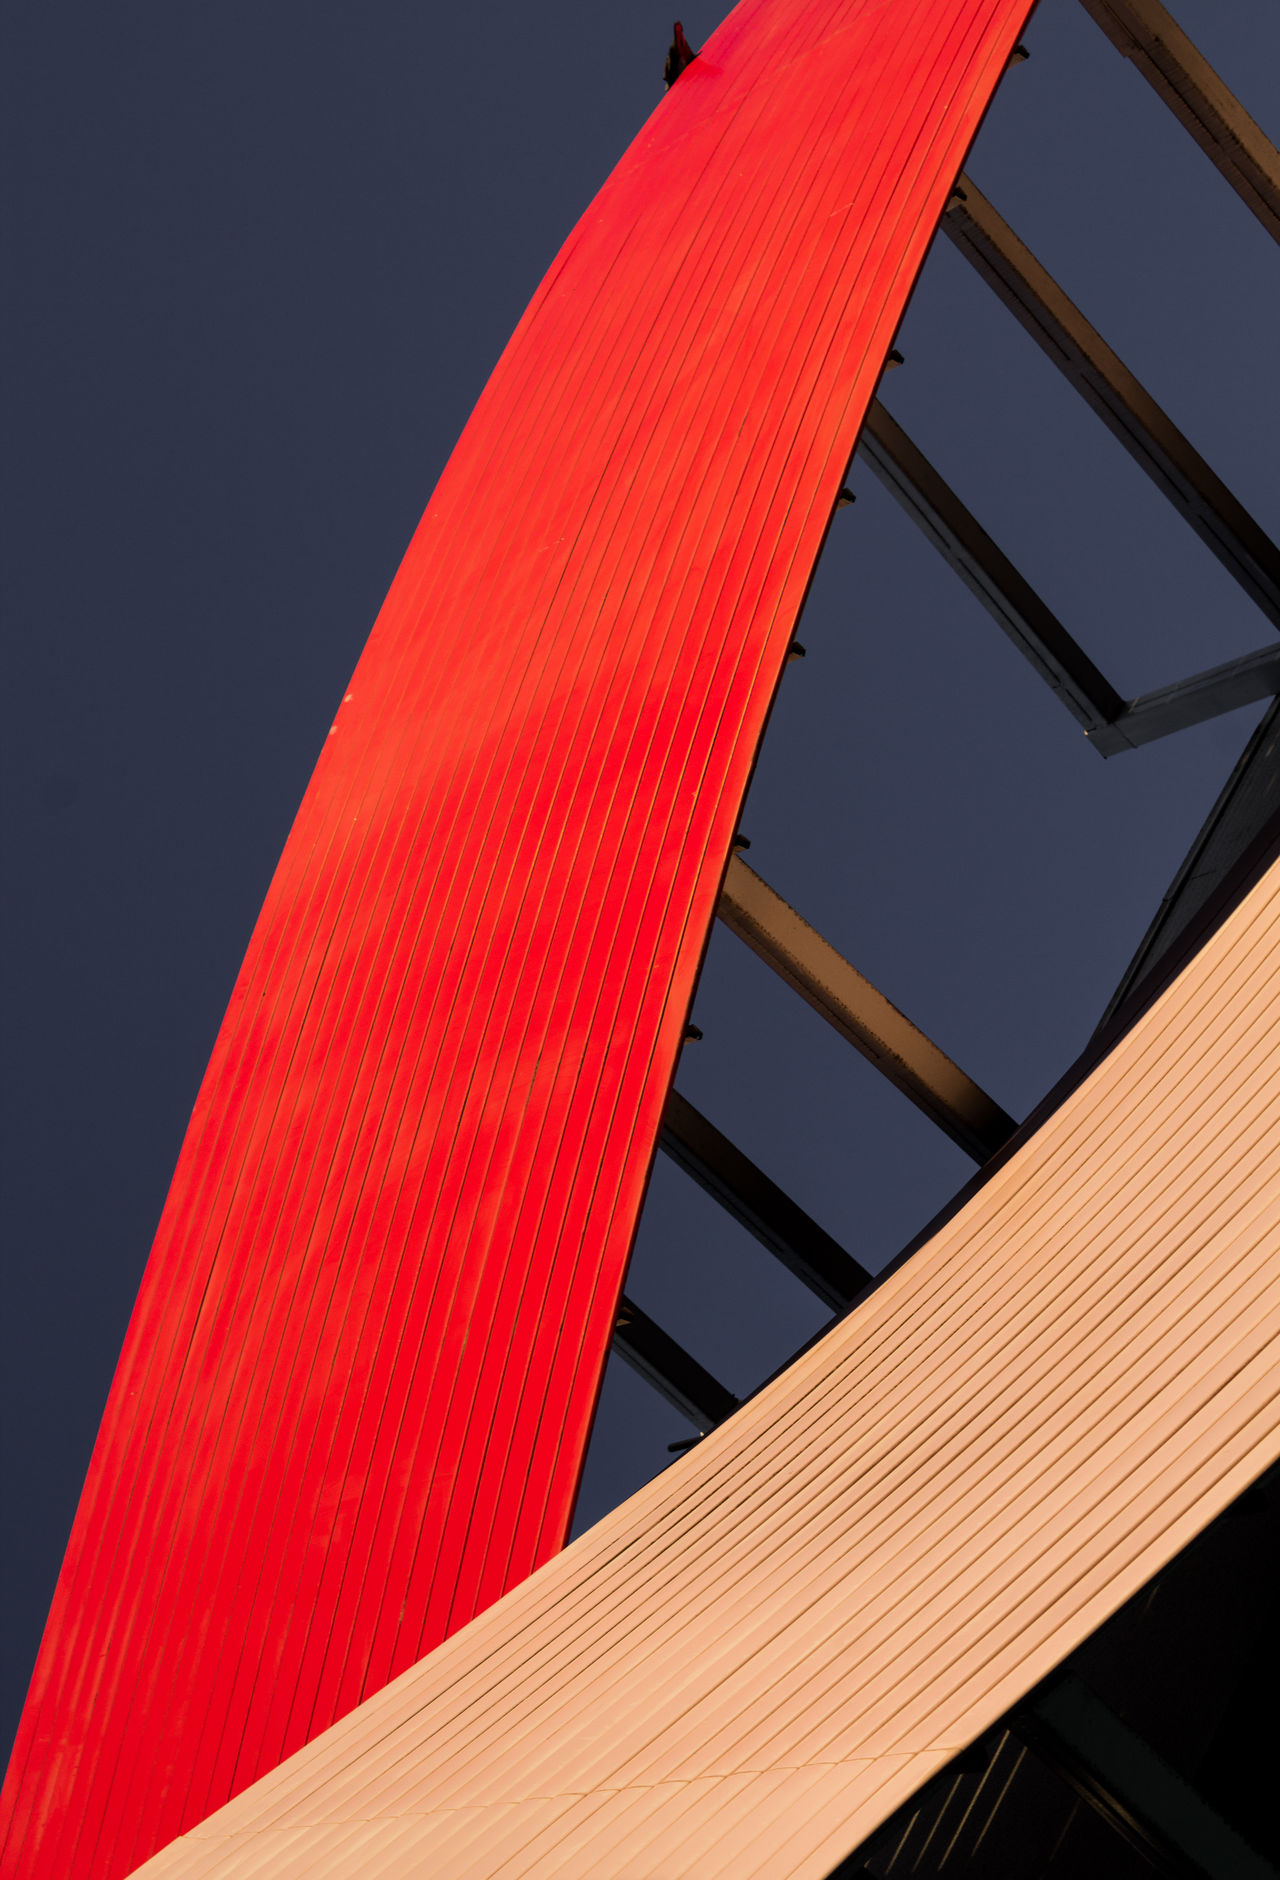 red, low angle view, architecture, built structure, no people